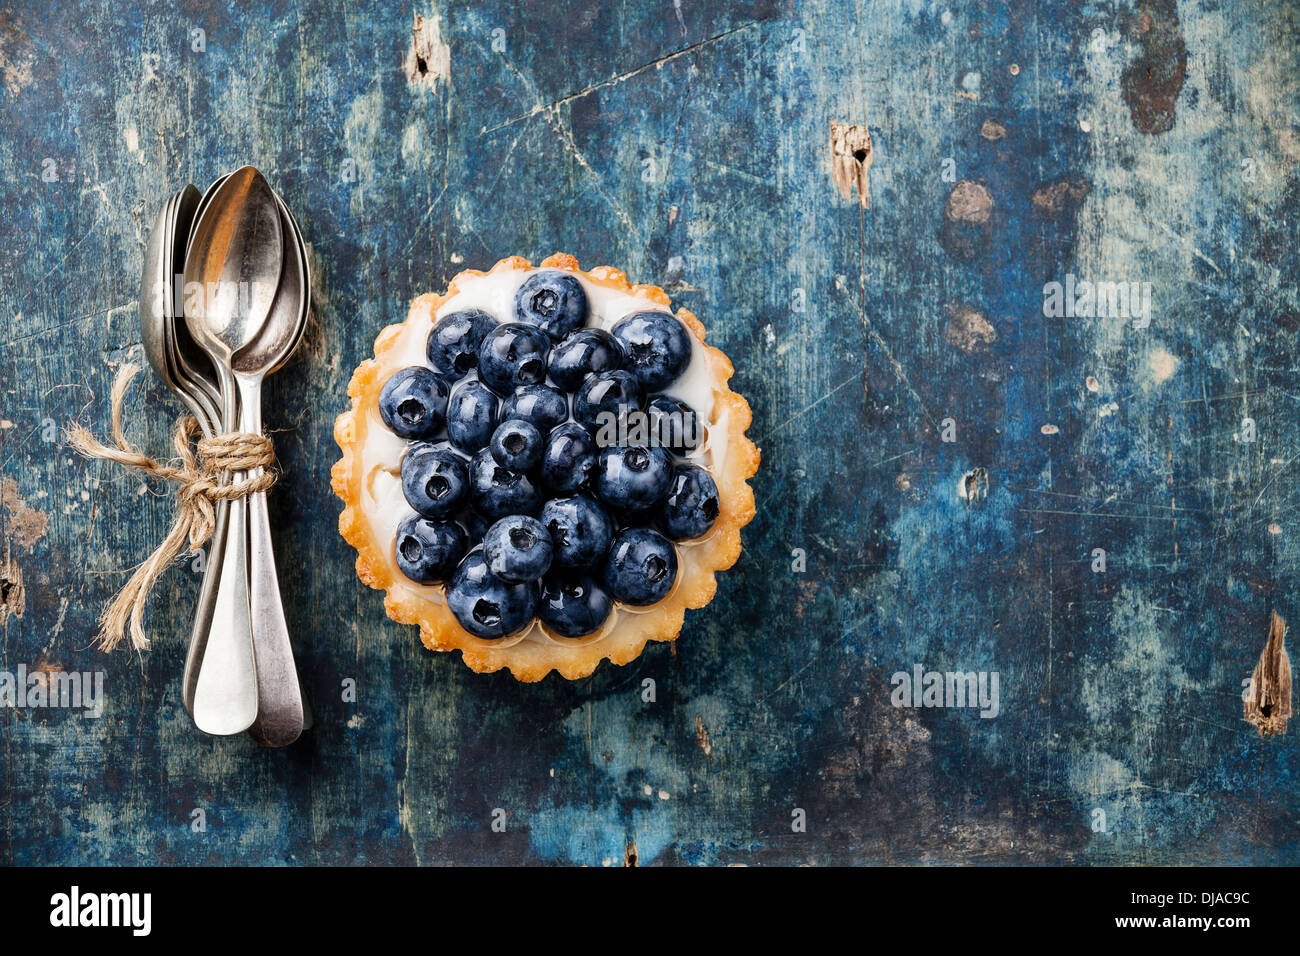 Blueberry tart and Bunch of teaspoons on blue wooden background - Stock Image